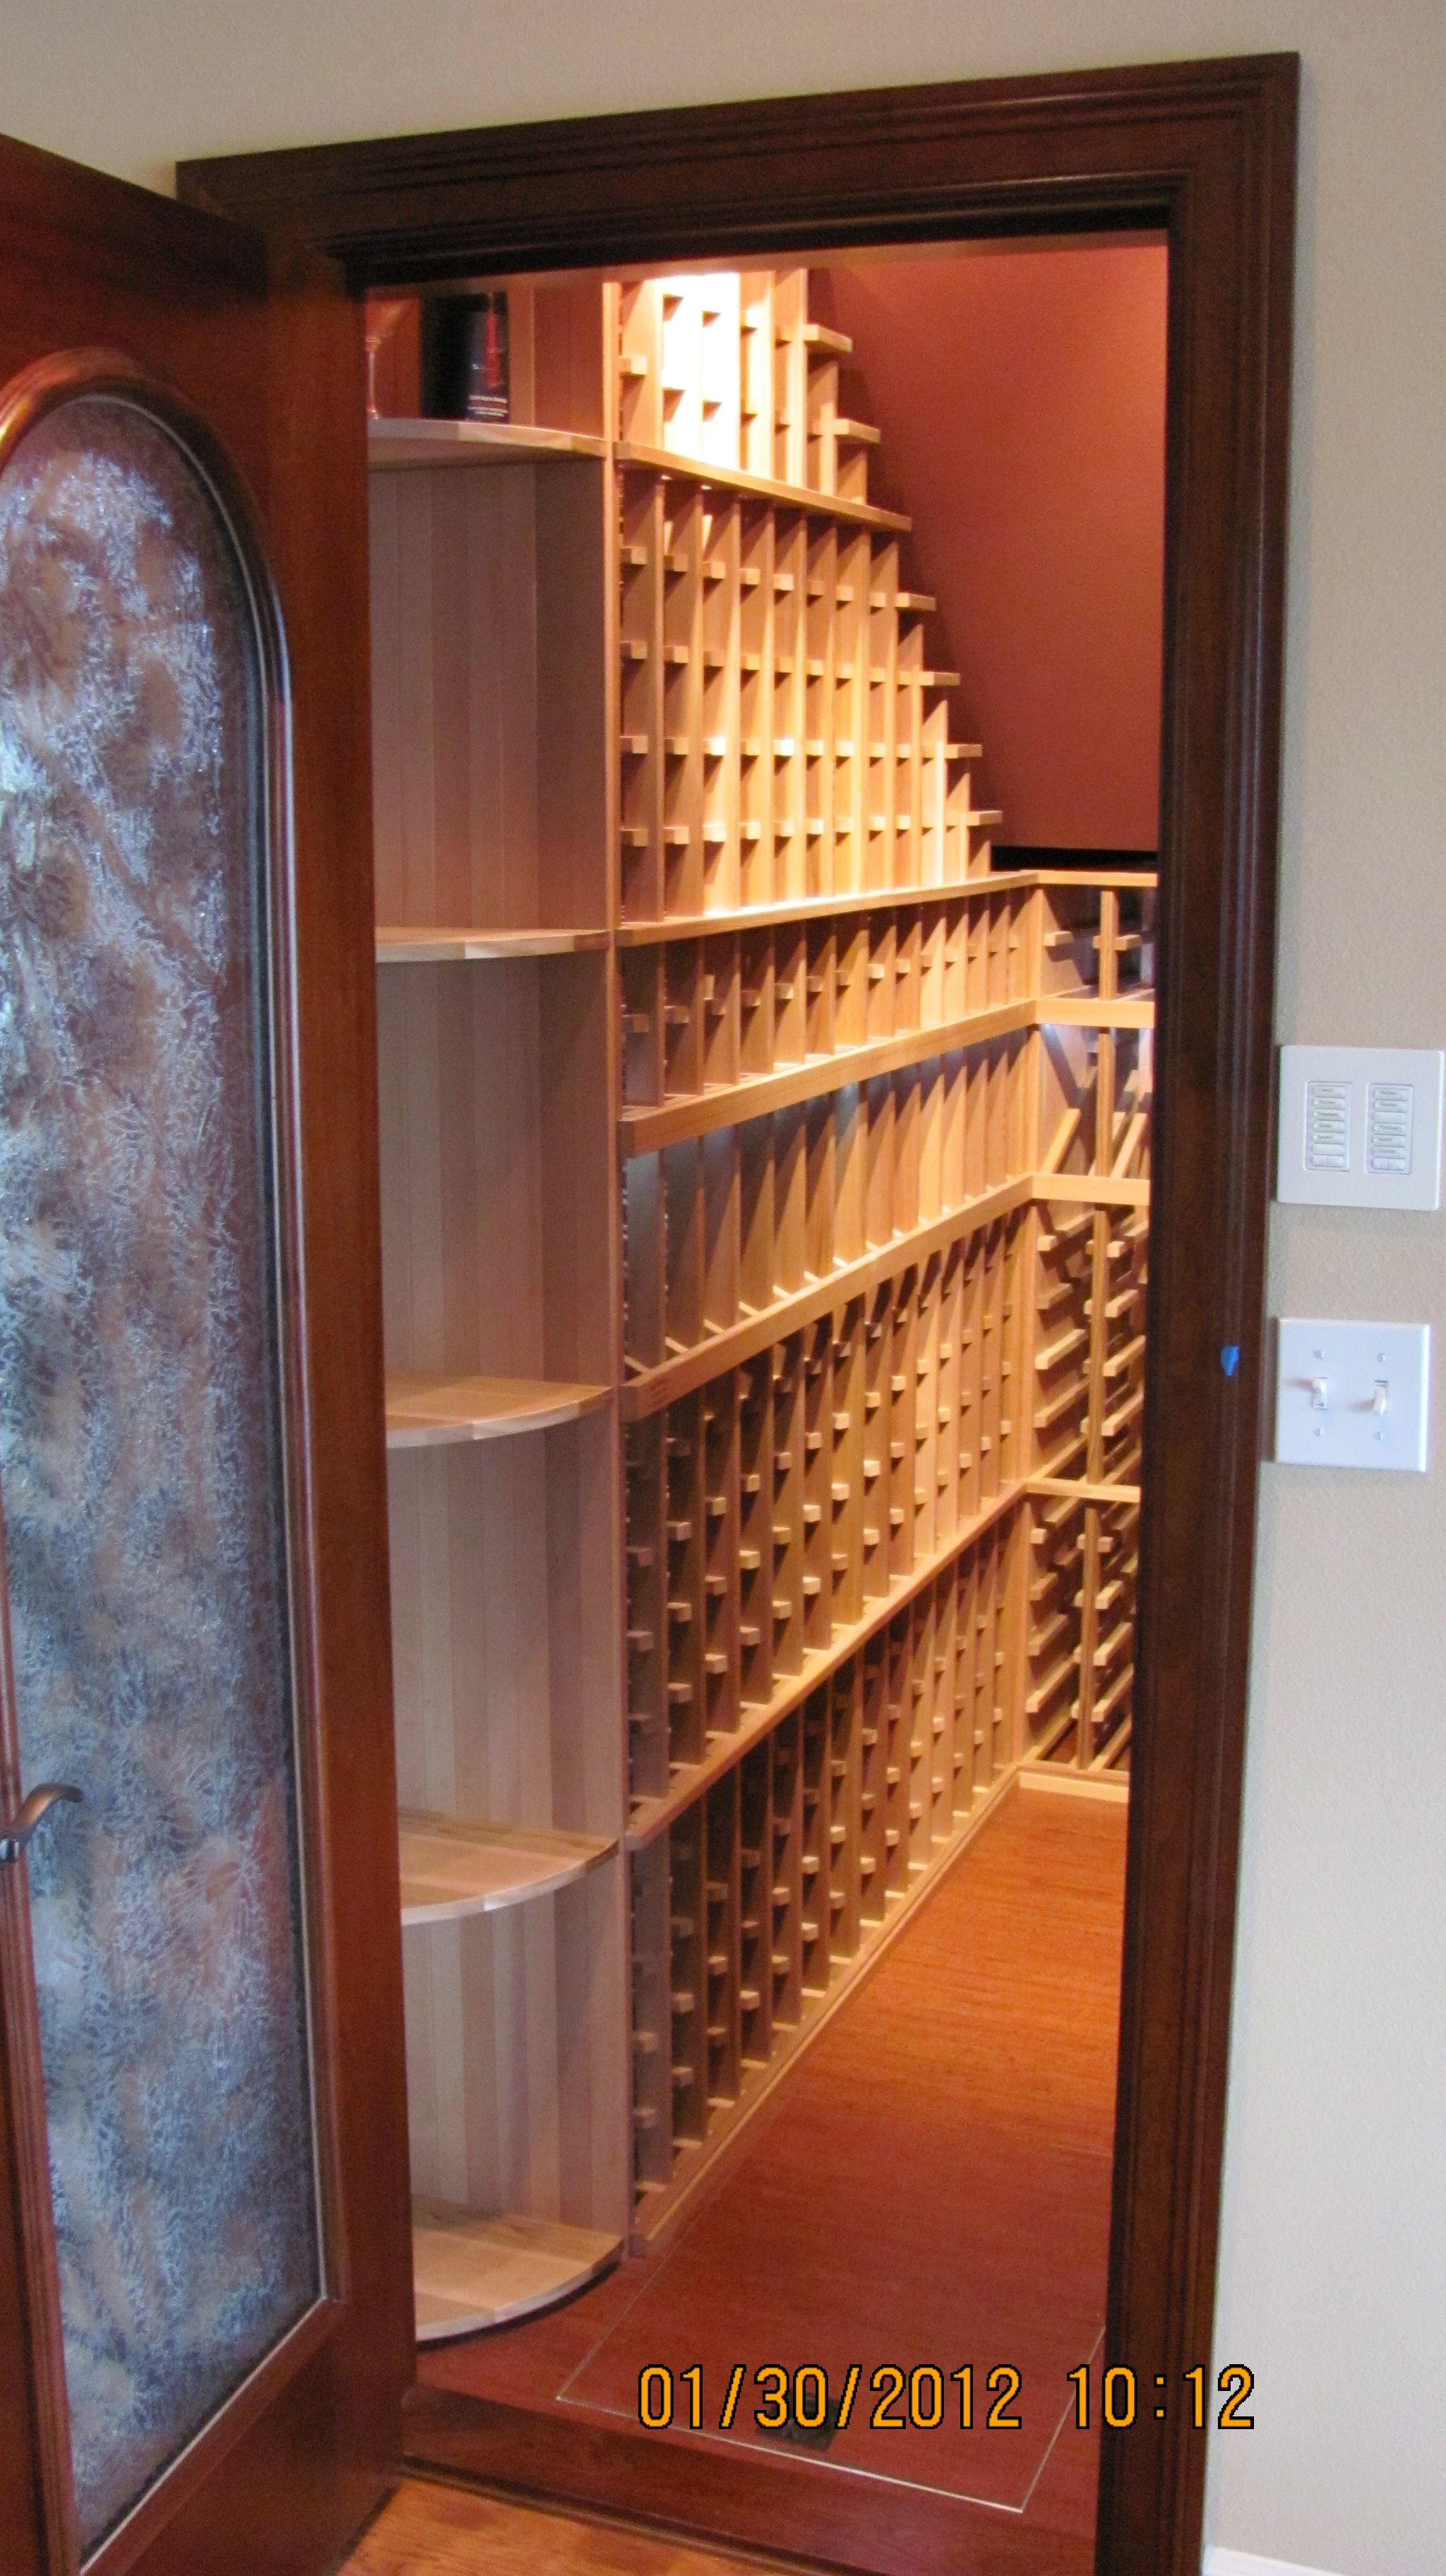 We can find a place to create a wine room, or wine cellar. This is under the stairs with a tilted display row and rope lights. Check out www.reasonableracks.com